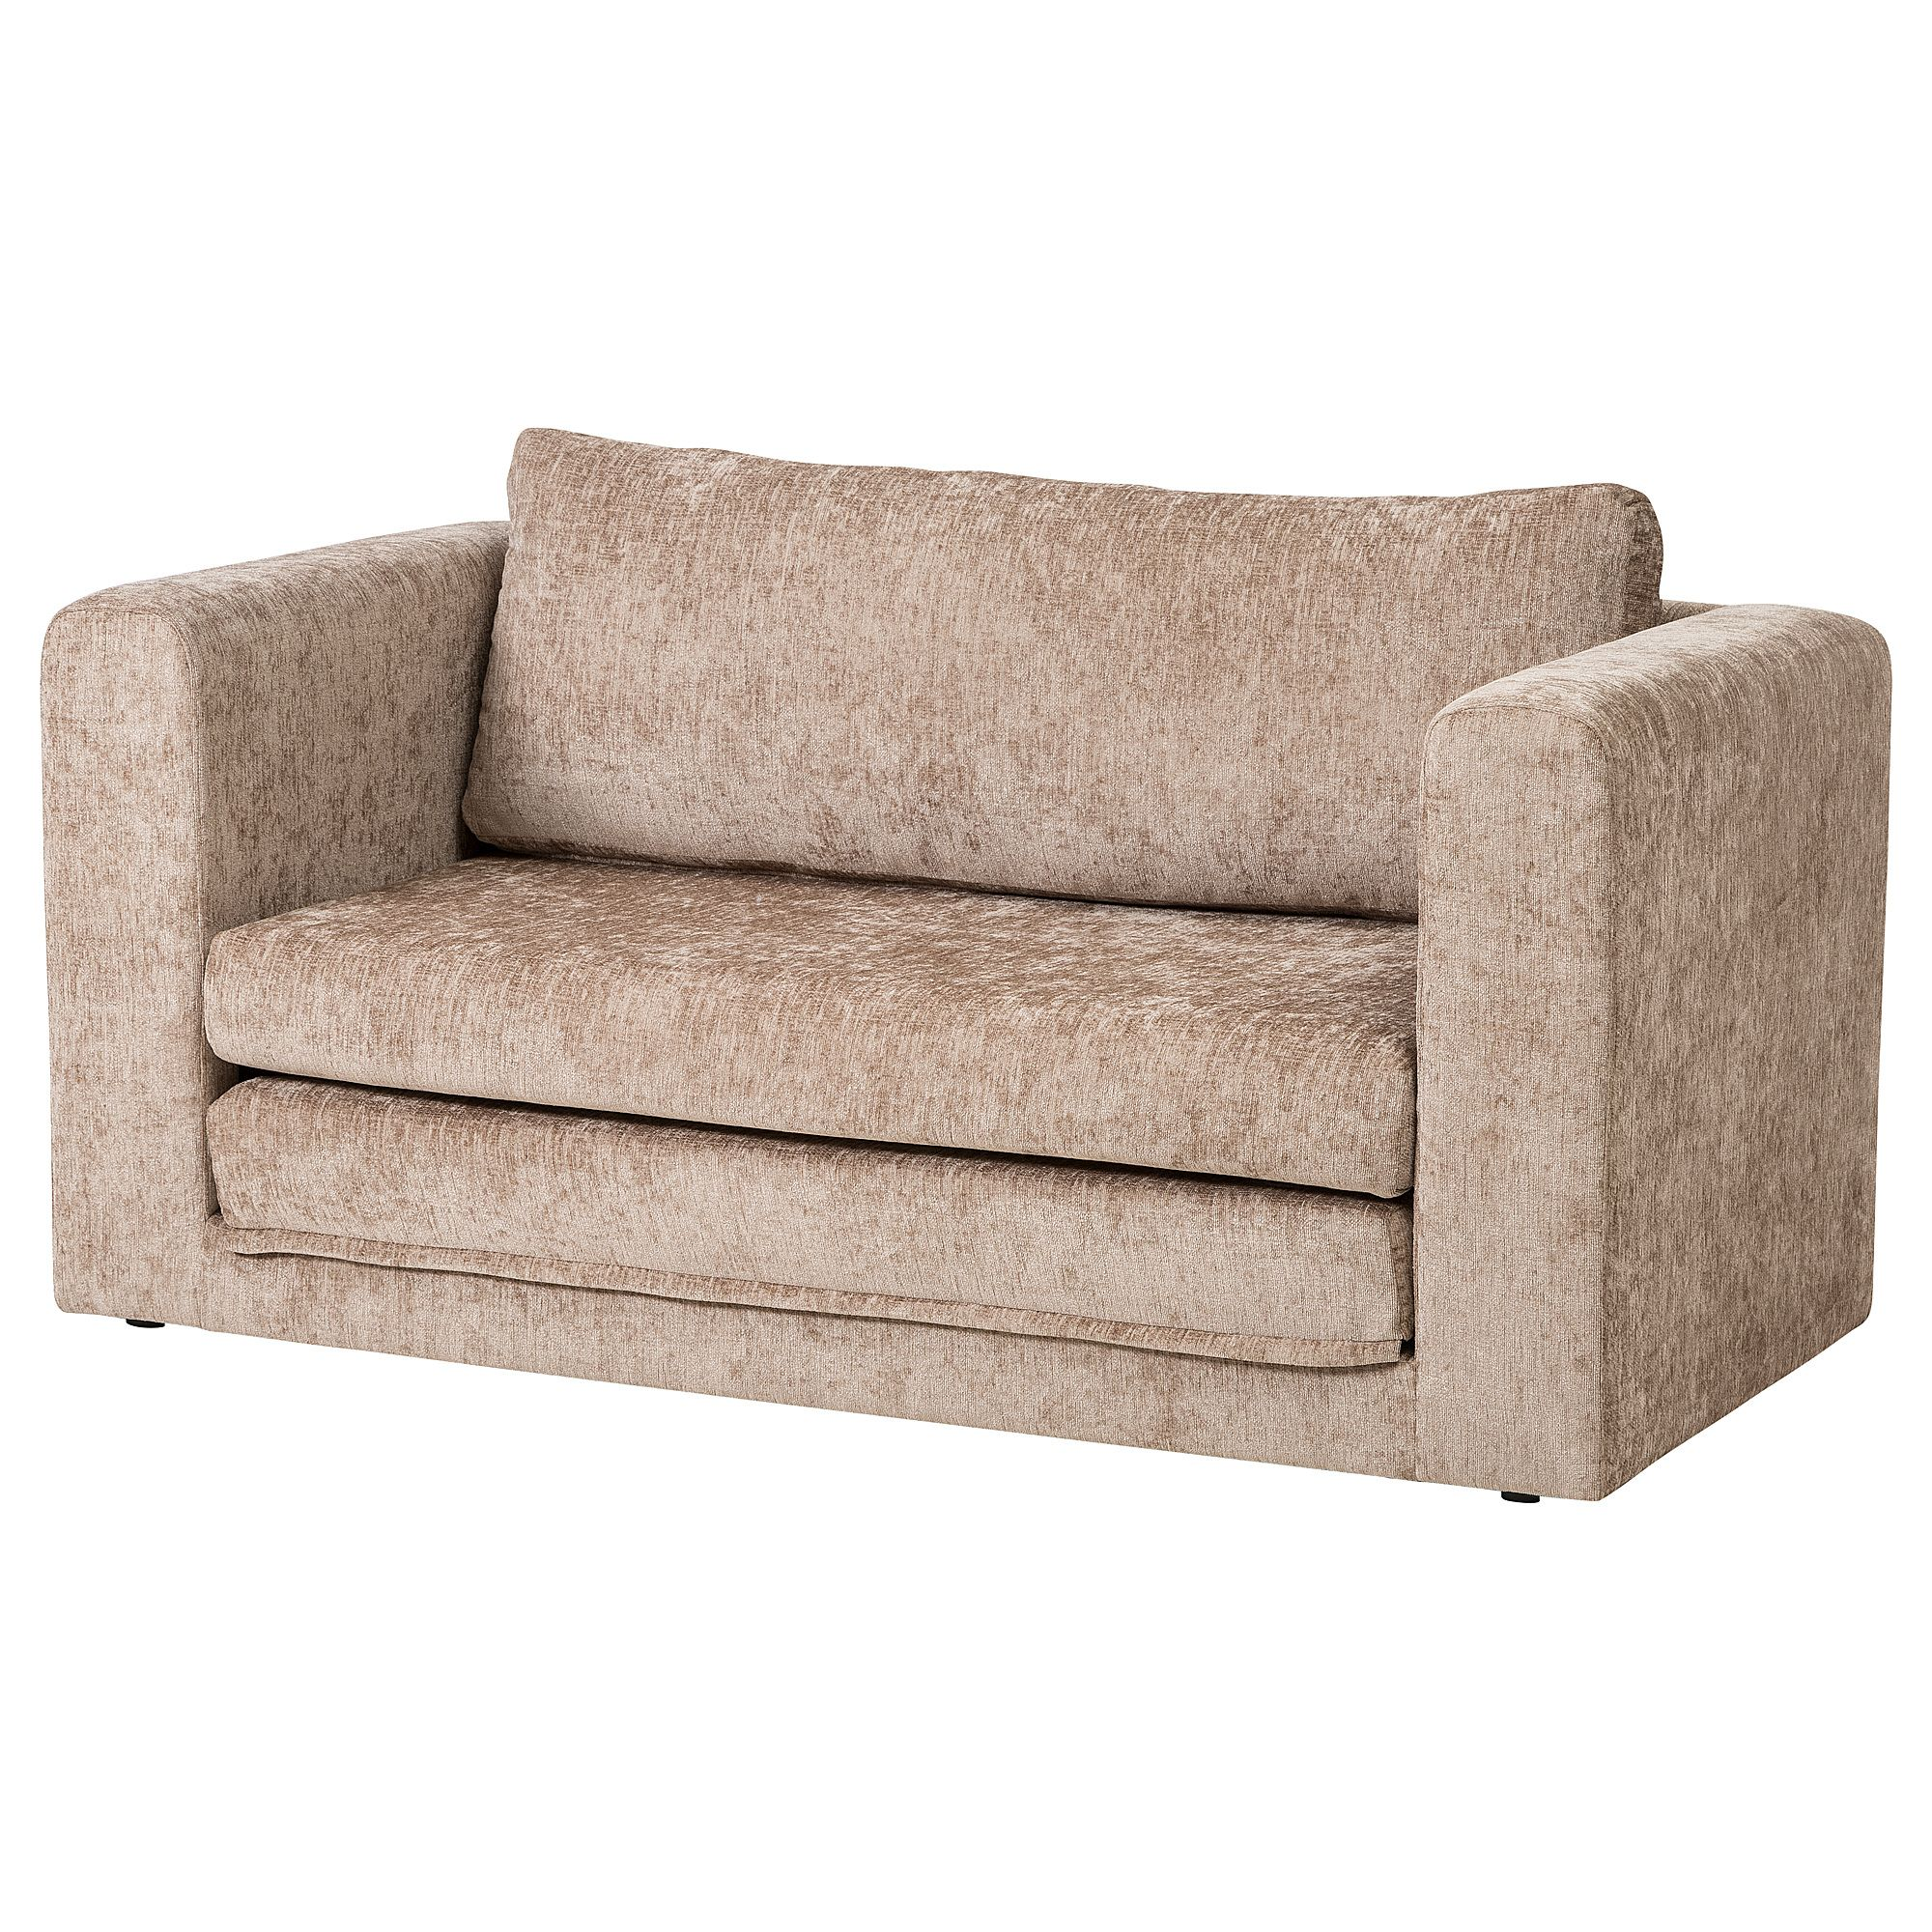 2 Sofa Bed Sofa Bed Beige Bed Small Sofa Bed